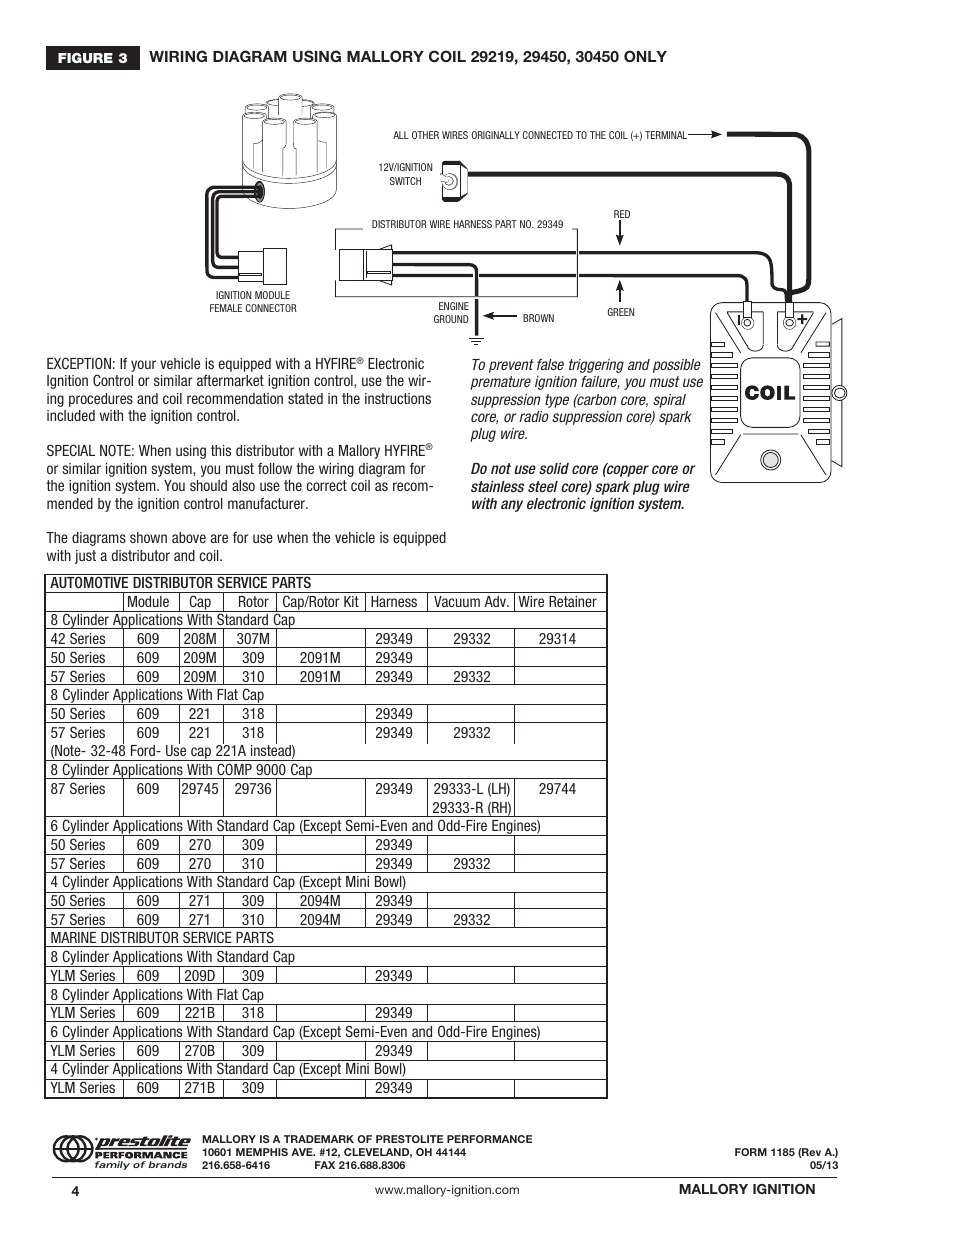 mallory ignition mallory magnetic breakerless distributor 609 page4?resize\\\=665%2C861 unilite wiring diagram gandul 45 77 79 119 motec m4 wiring diagram at mifinder.co